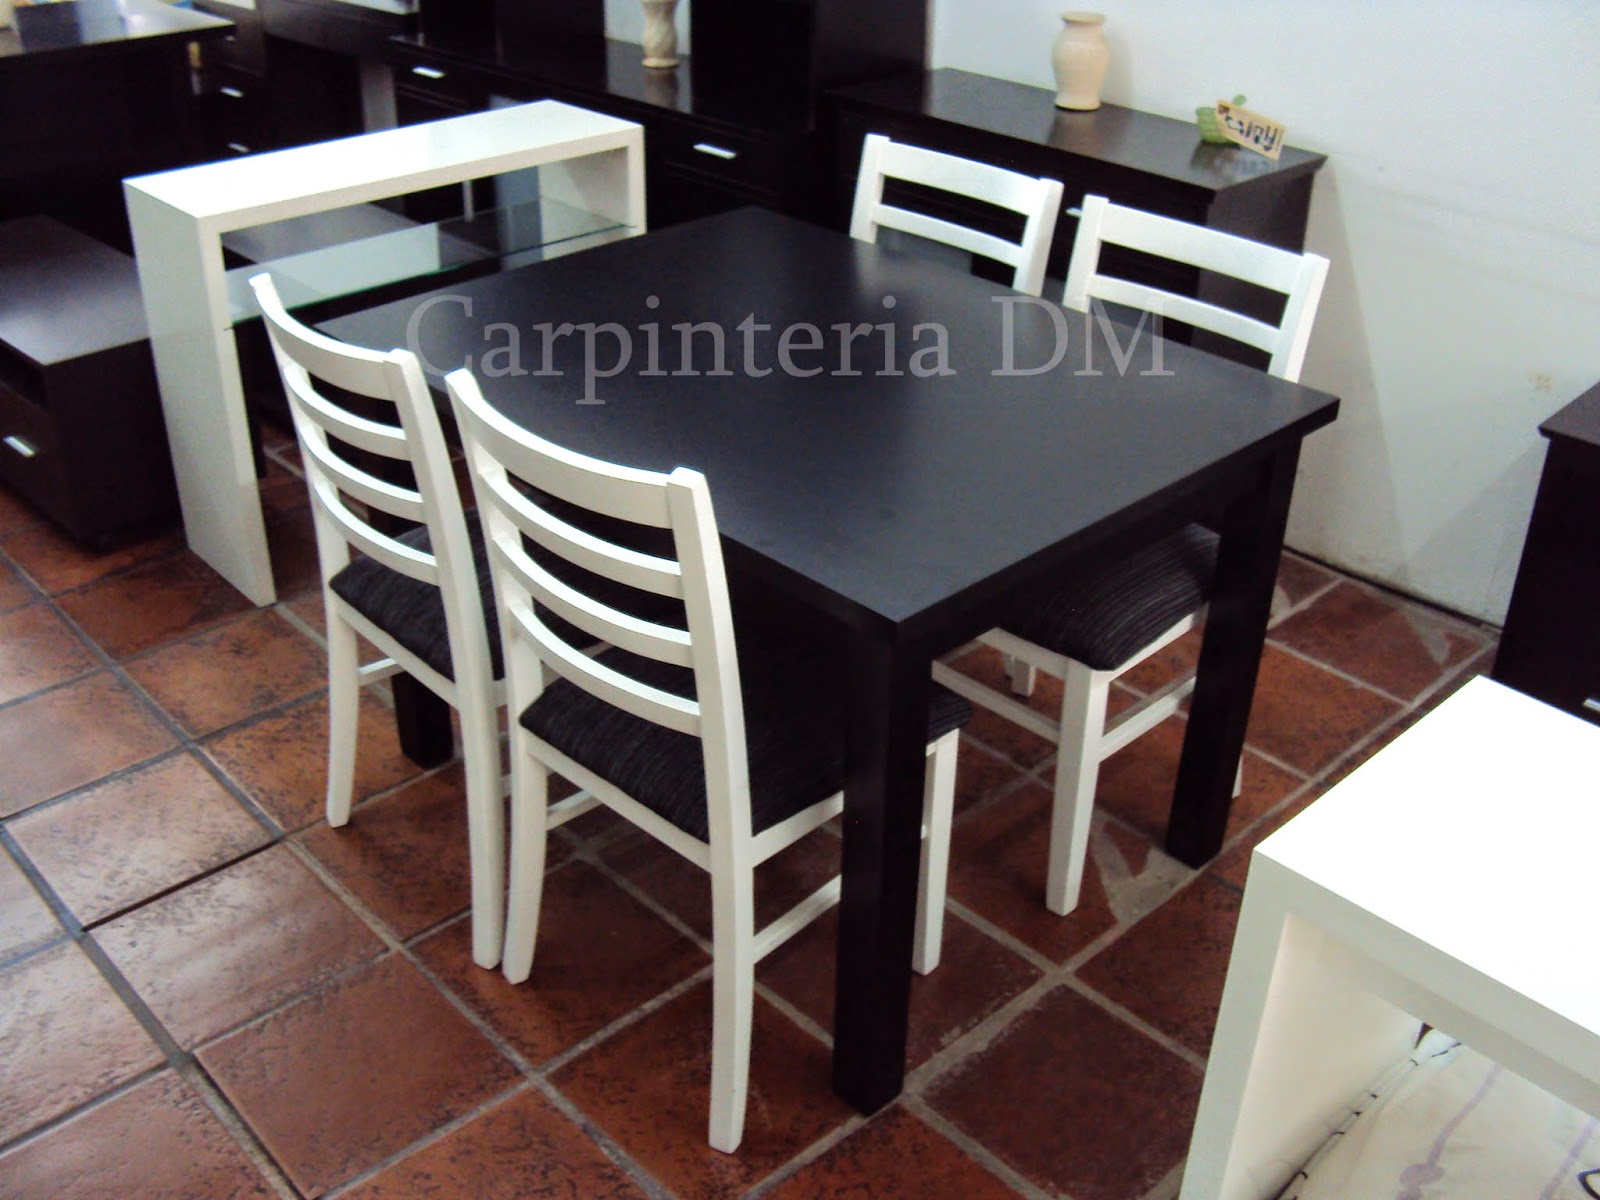 mesas comedor capinteriadm dise os. Black Bedroom Furniture Sets. Home Design Ideas